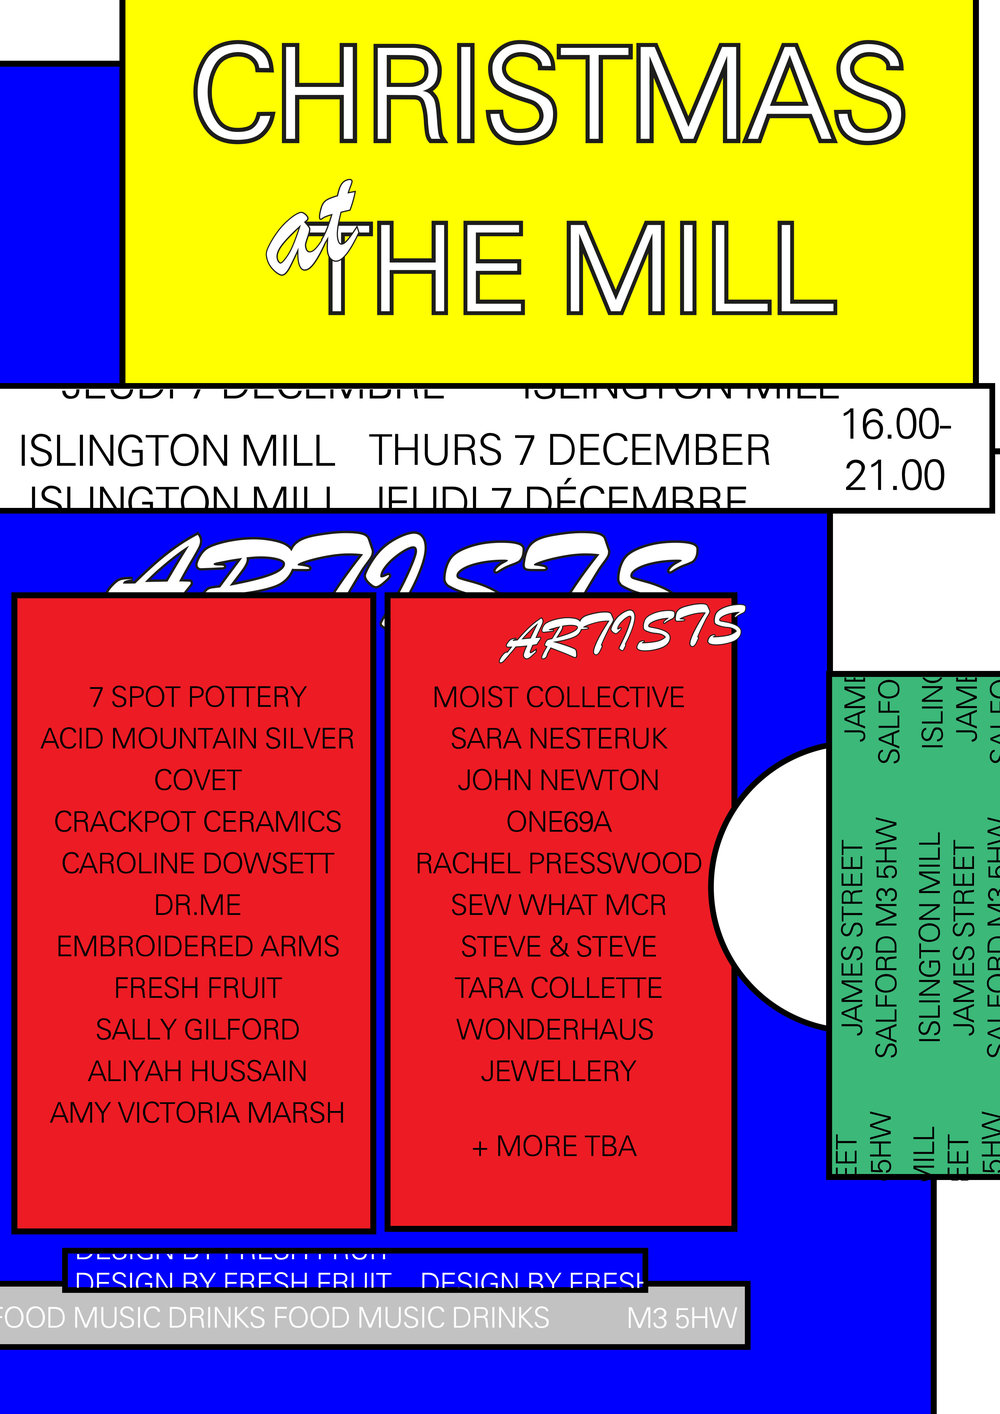 CHRISTMAS AT THE MILL POSTERr.jpg